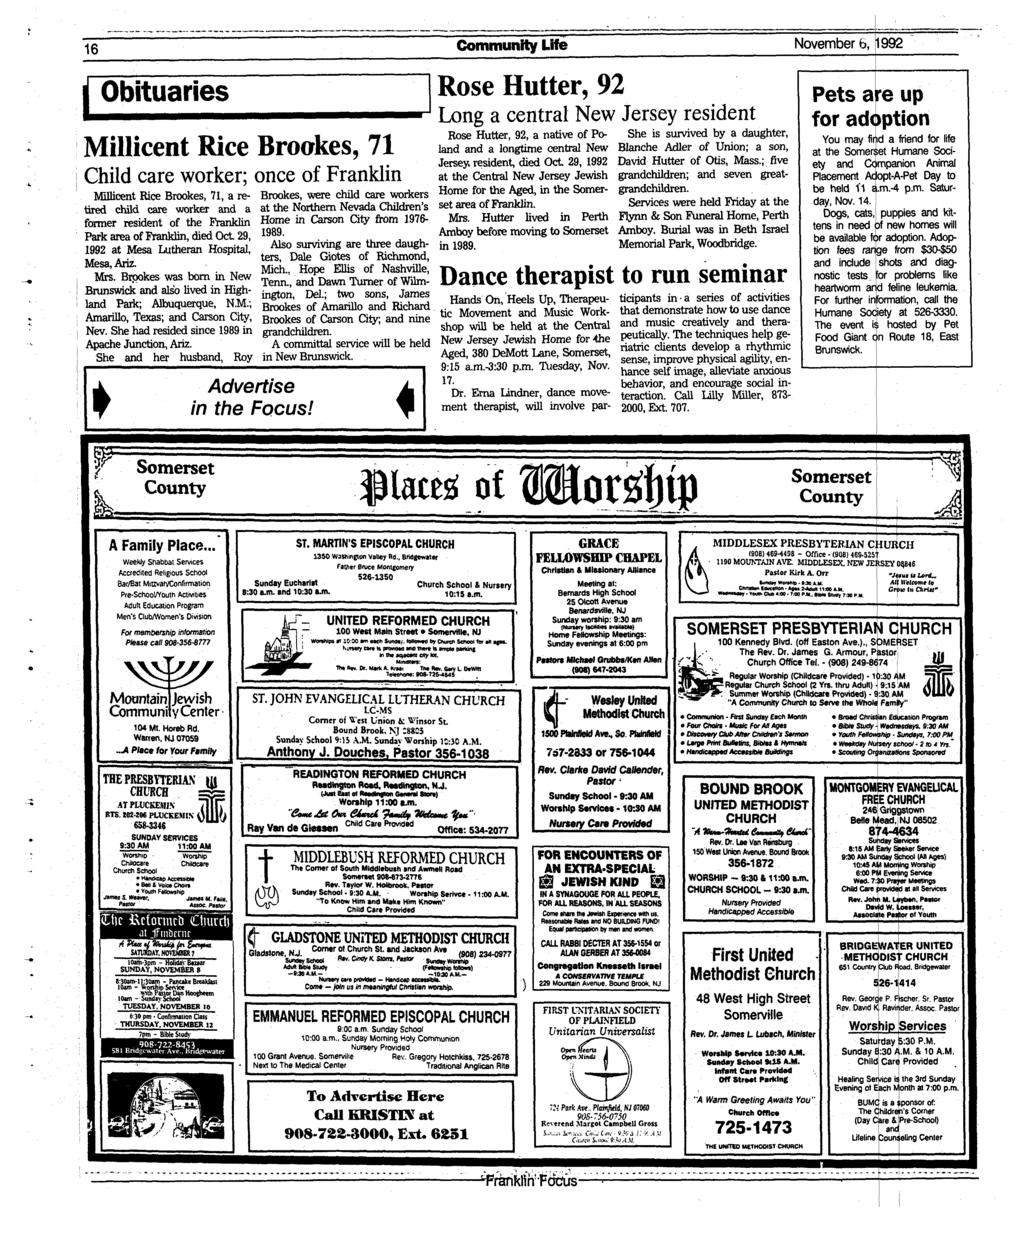 16 Community Life November 6, 1992 Obituaries Millicent Rice Brookes, 71 Child care worker; once of Franklin Millicent Rice Brookes, 71, a retired child care worker and a former resident of the